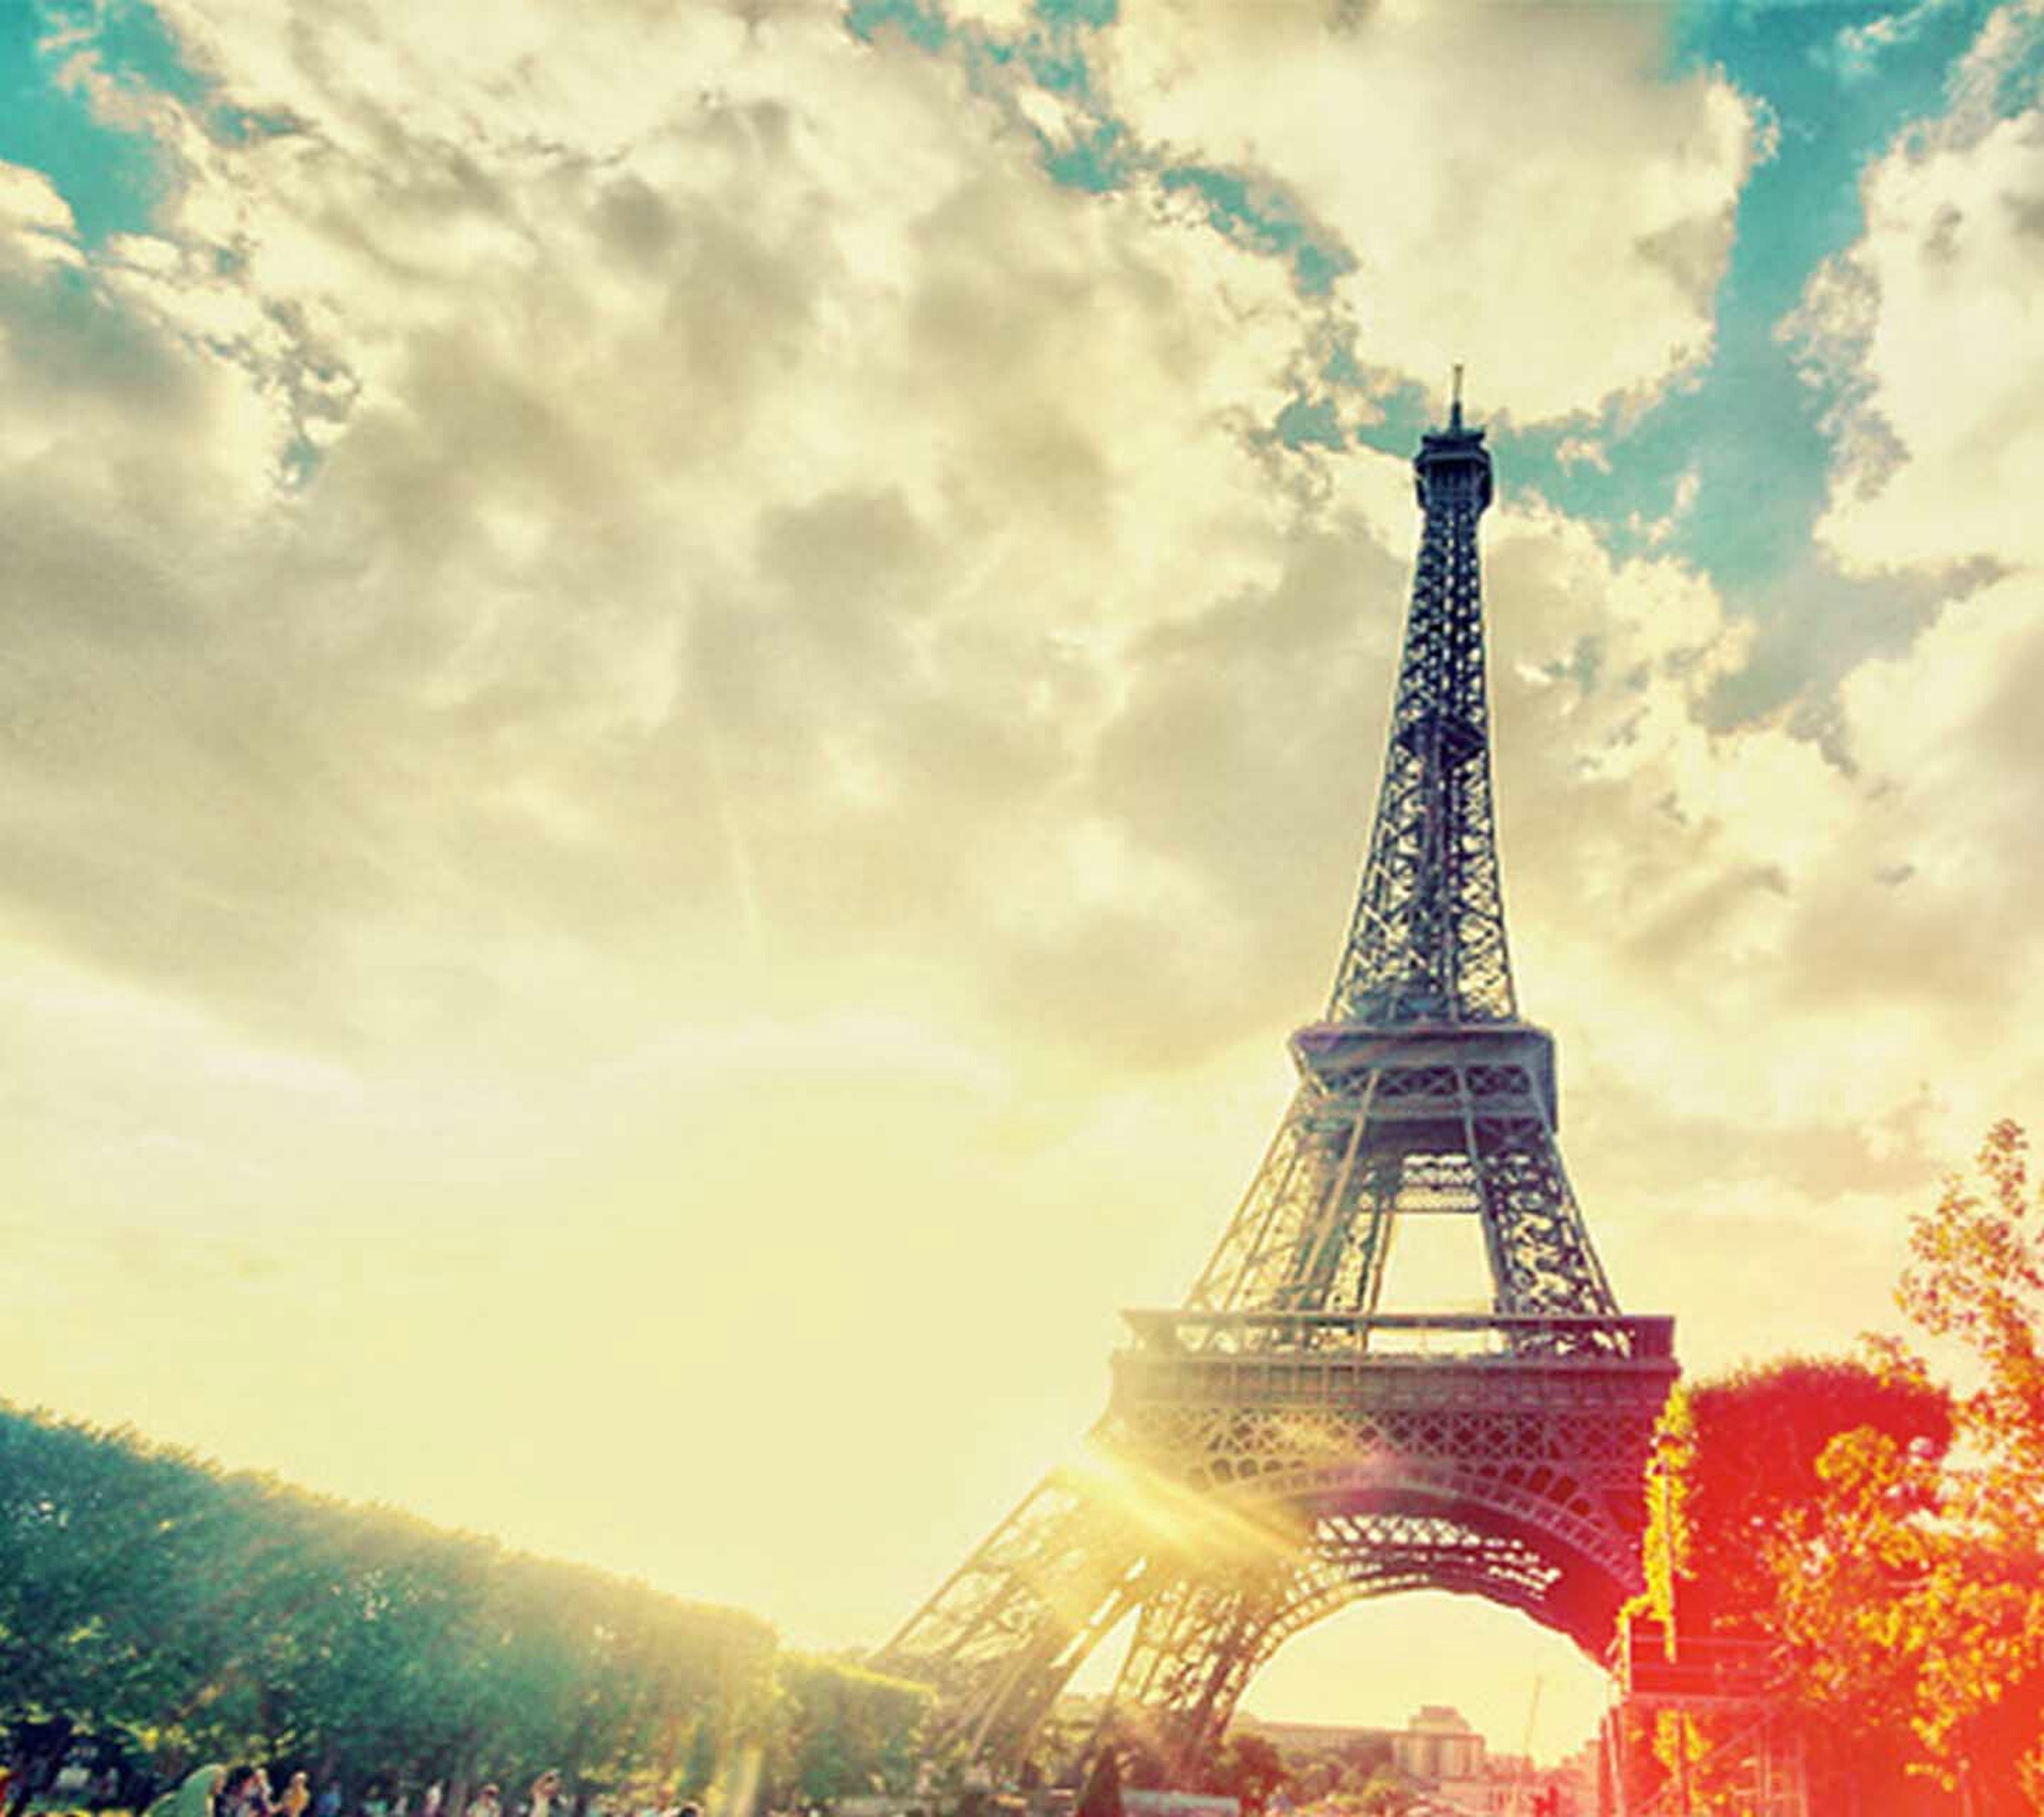 tourism, travel destinations, famous place, international landmark, eiffel tower, tower, travel, capital cities, built structure, architecture, culture, cloud - sky, tall - high, city, sky, metal, spire, architectural feature, iron - metal, outdoors, cloud, tall, cloudy, history, day, nature, 19th century style, scenics, monument